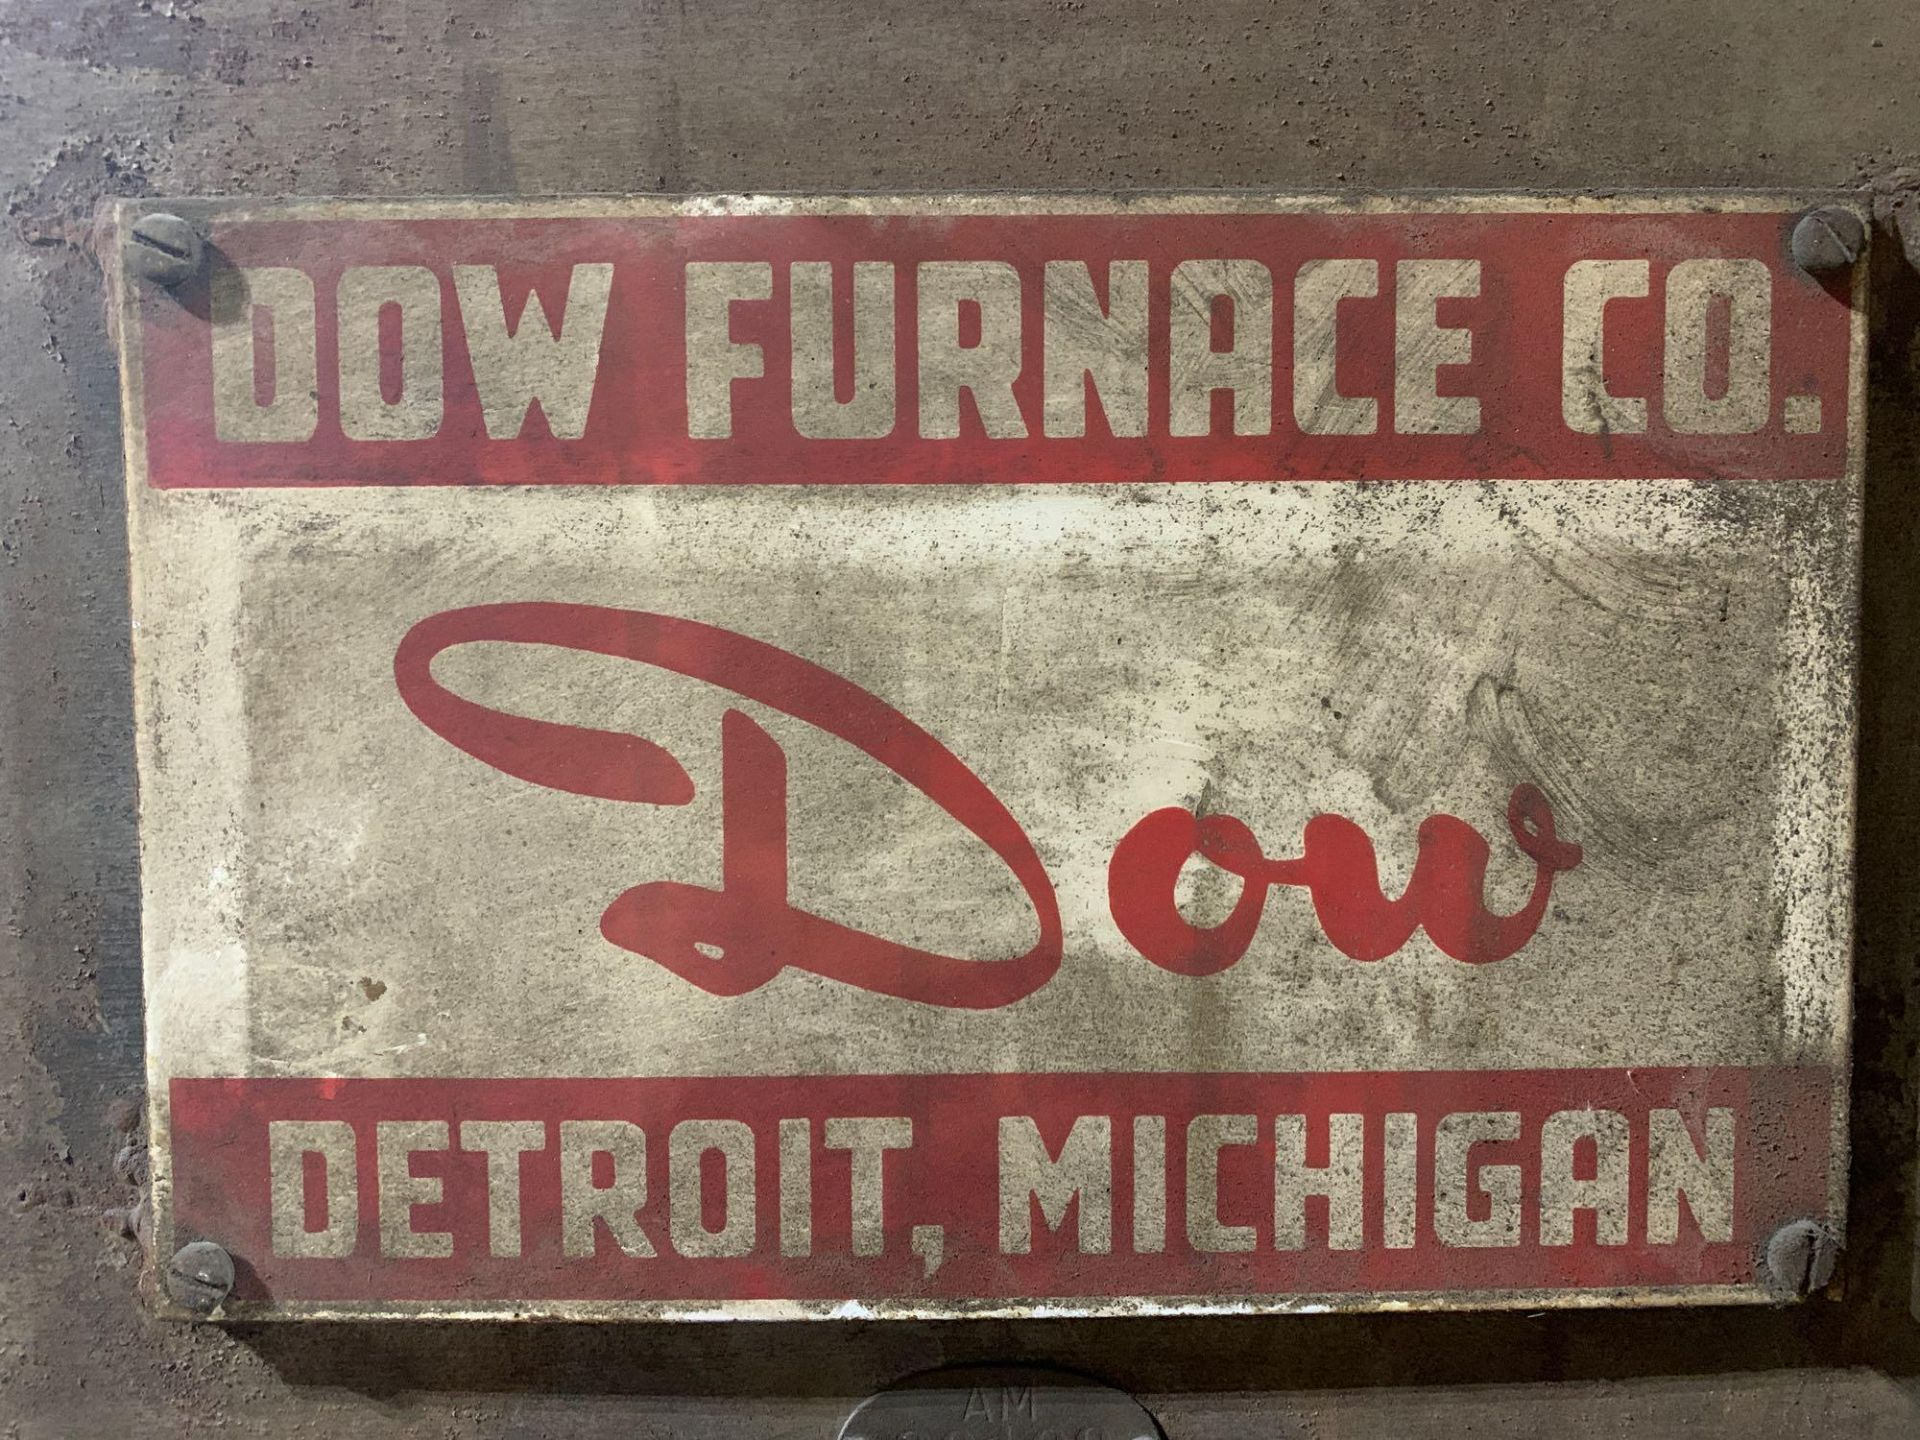 Dow Furnace Co. Electric Draw Furnace Seller States It Will Do At Least 1200 Degrees Model Bxe-24362 - Image 15 of 21